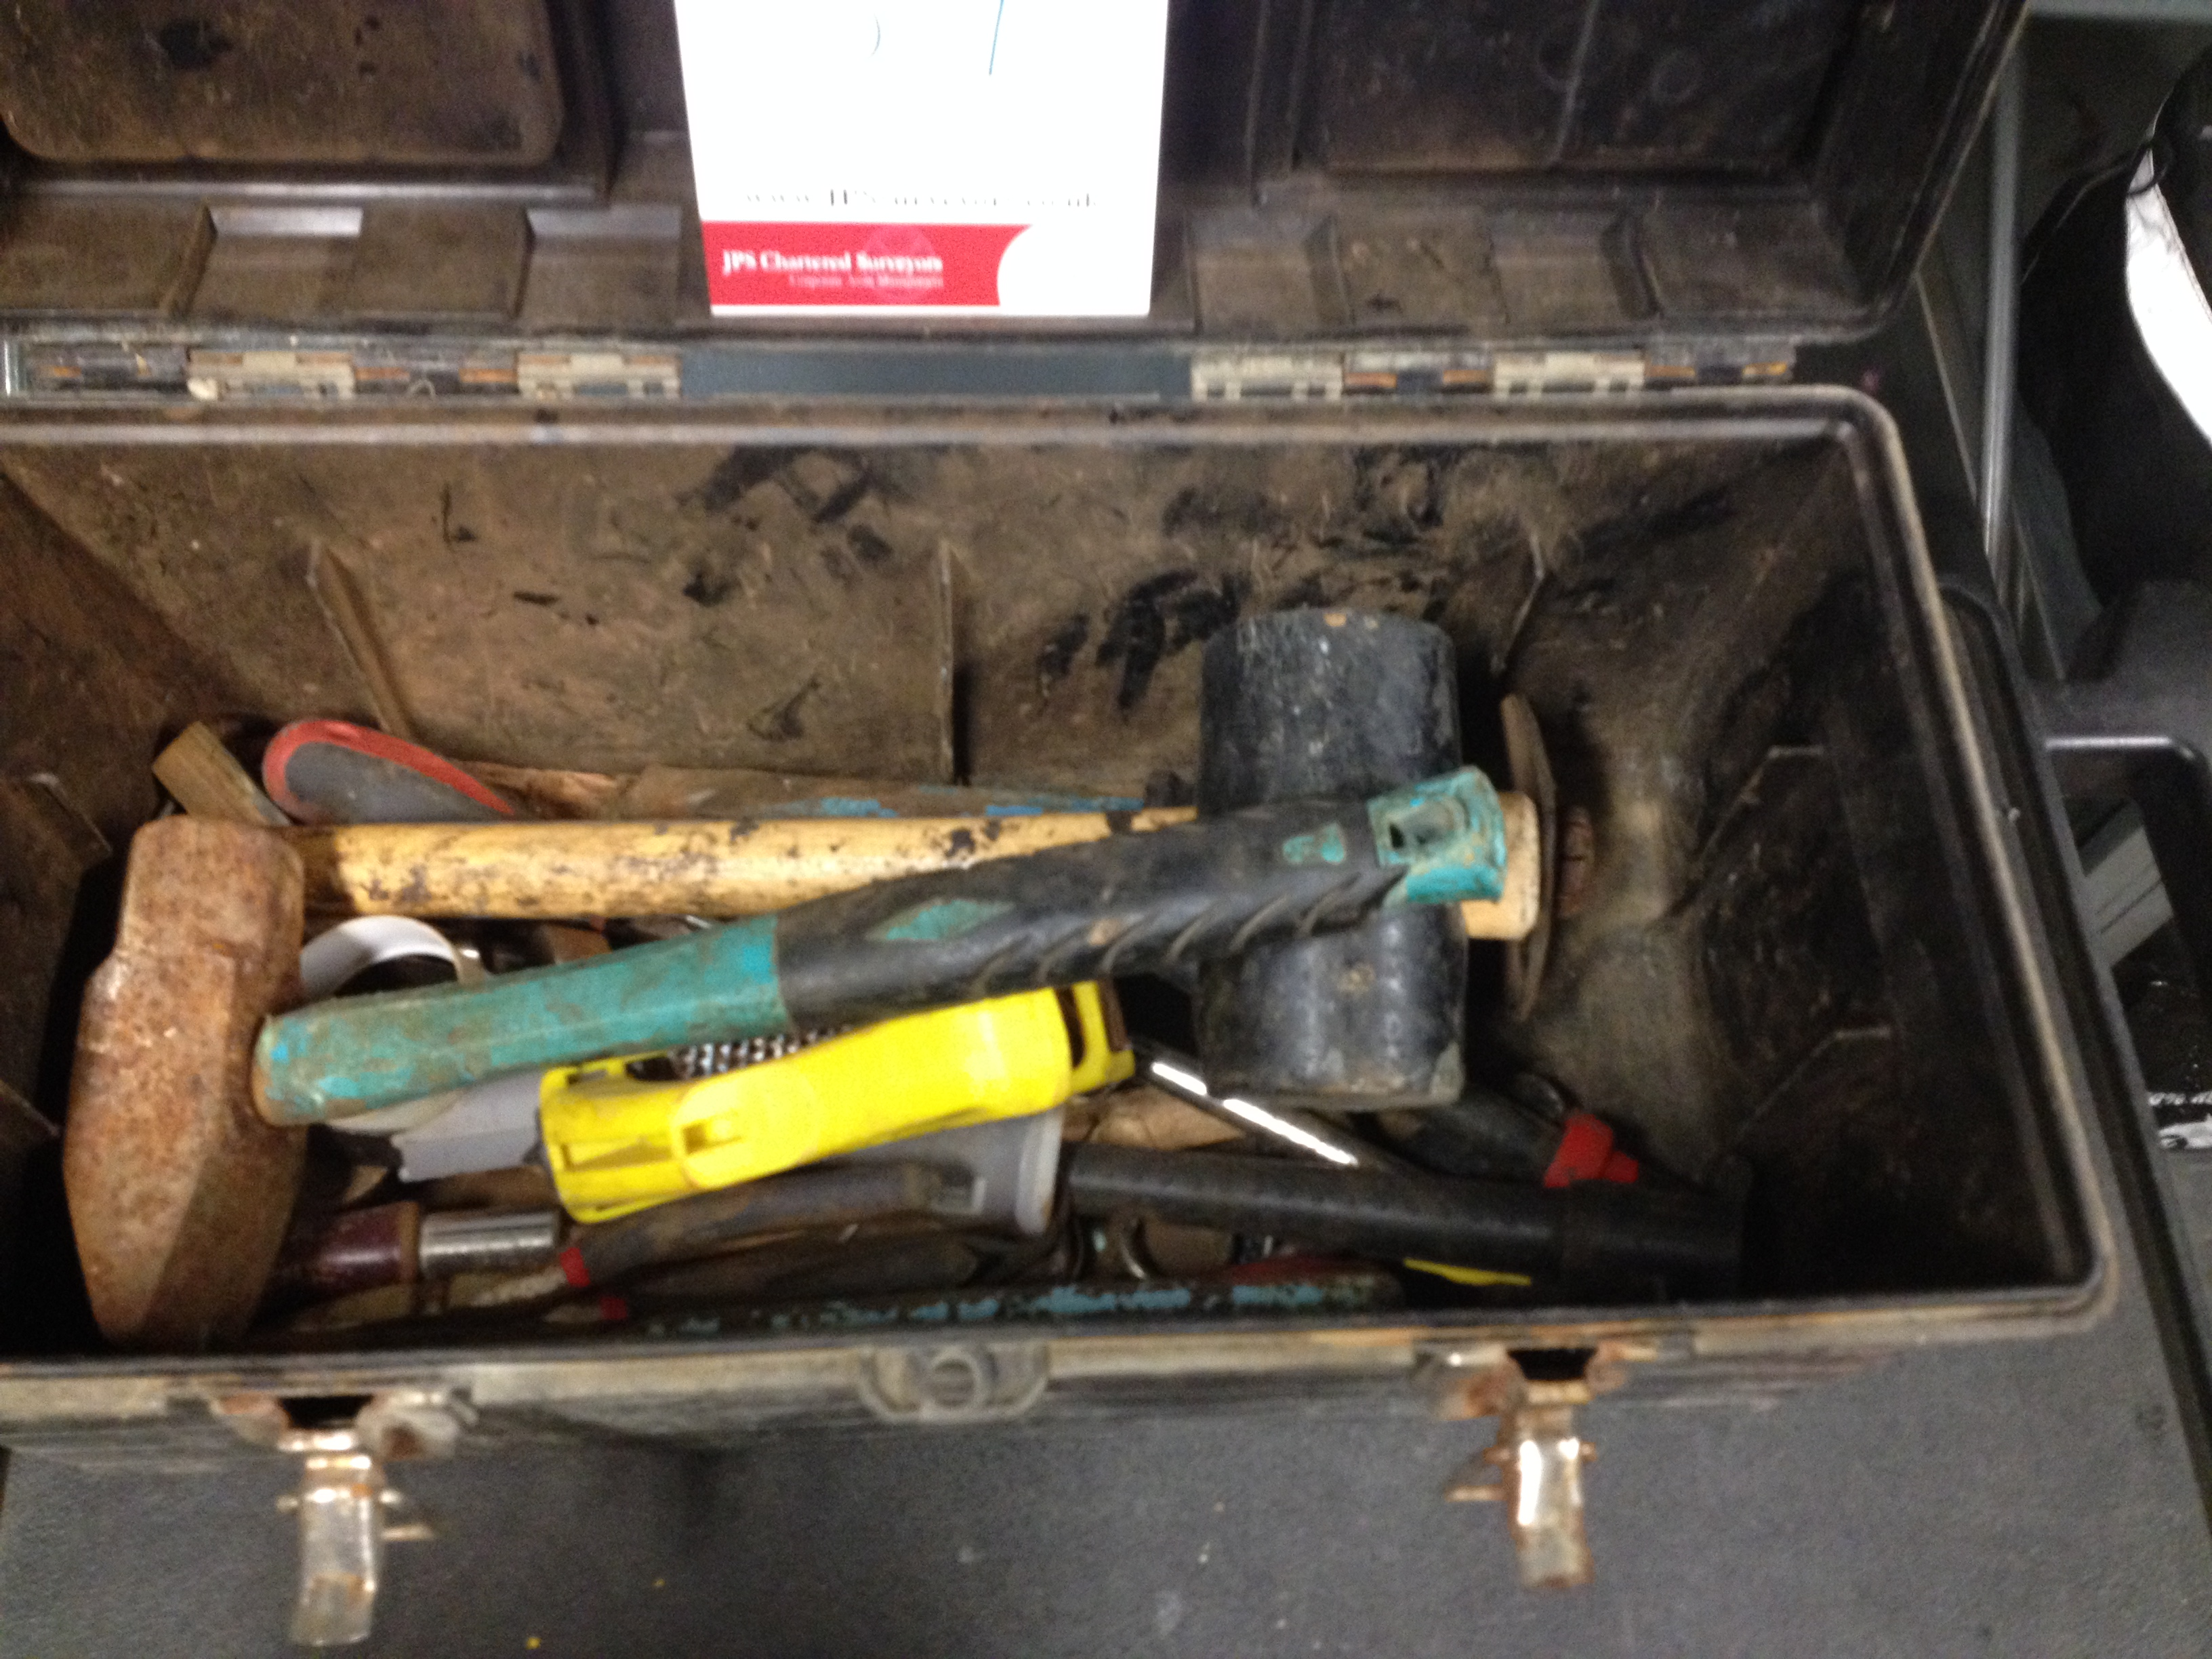 3 x Tool Boxes with Various tools and accessories - SEE PICTURE FOR FULL CONTENTS